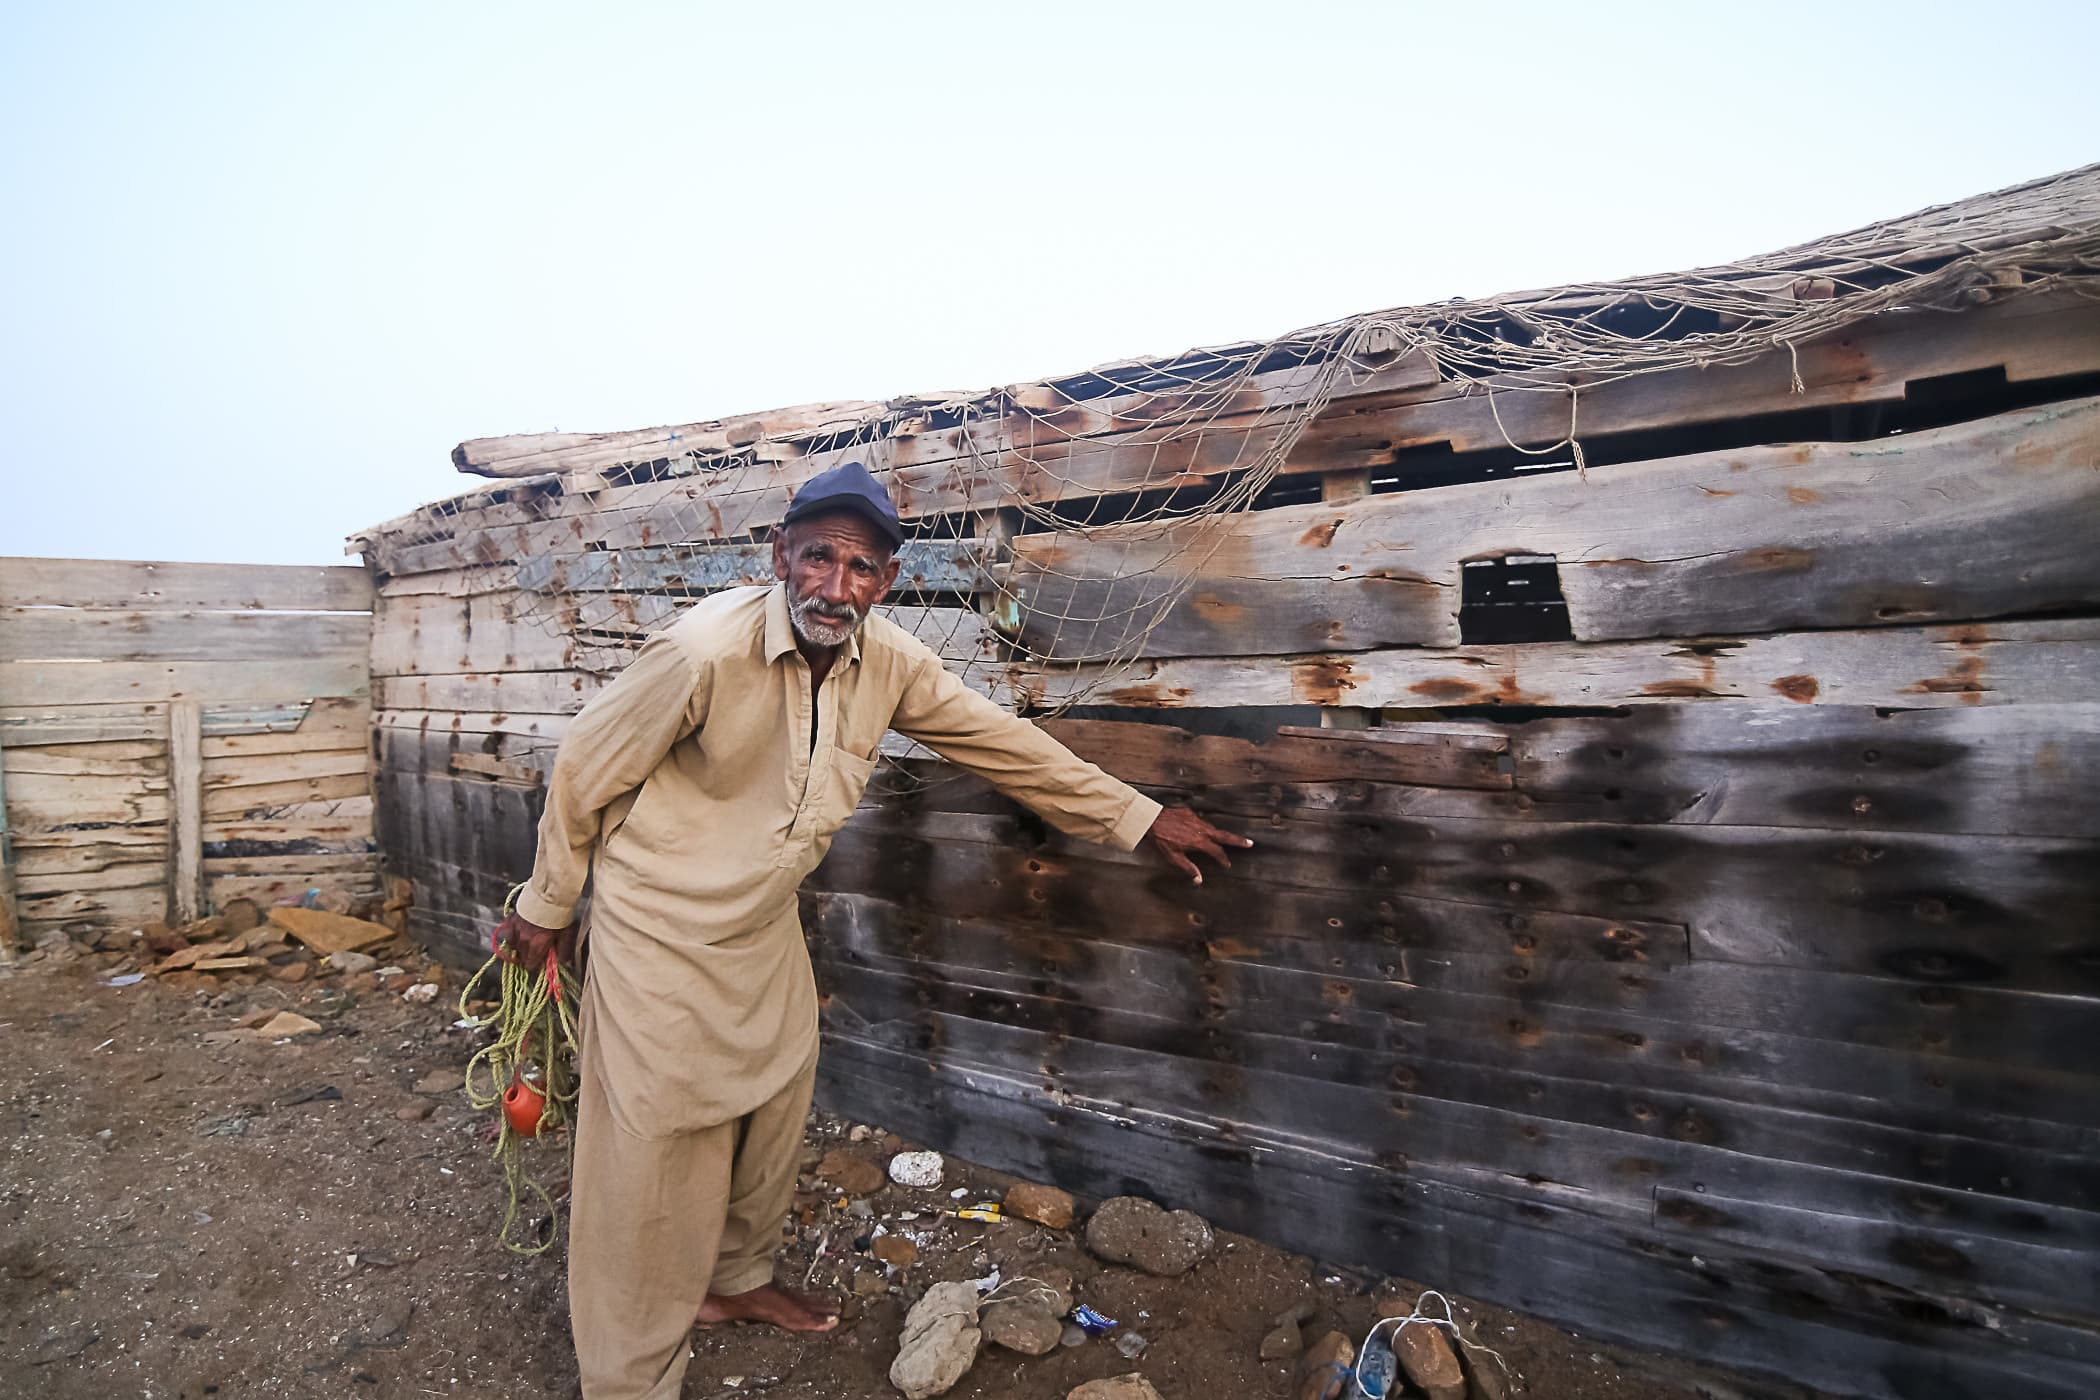 The old sail boat that is now used as a workshop for Chacha Majeed.